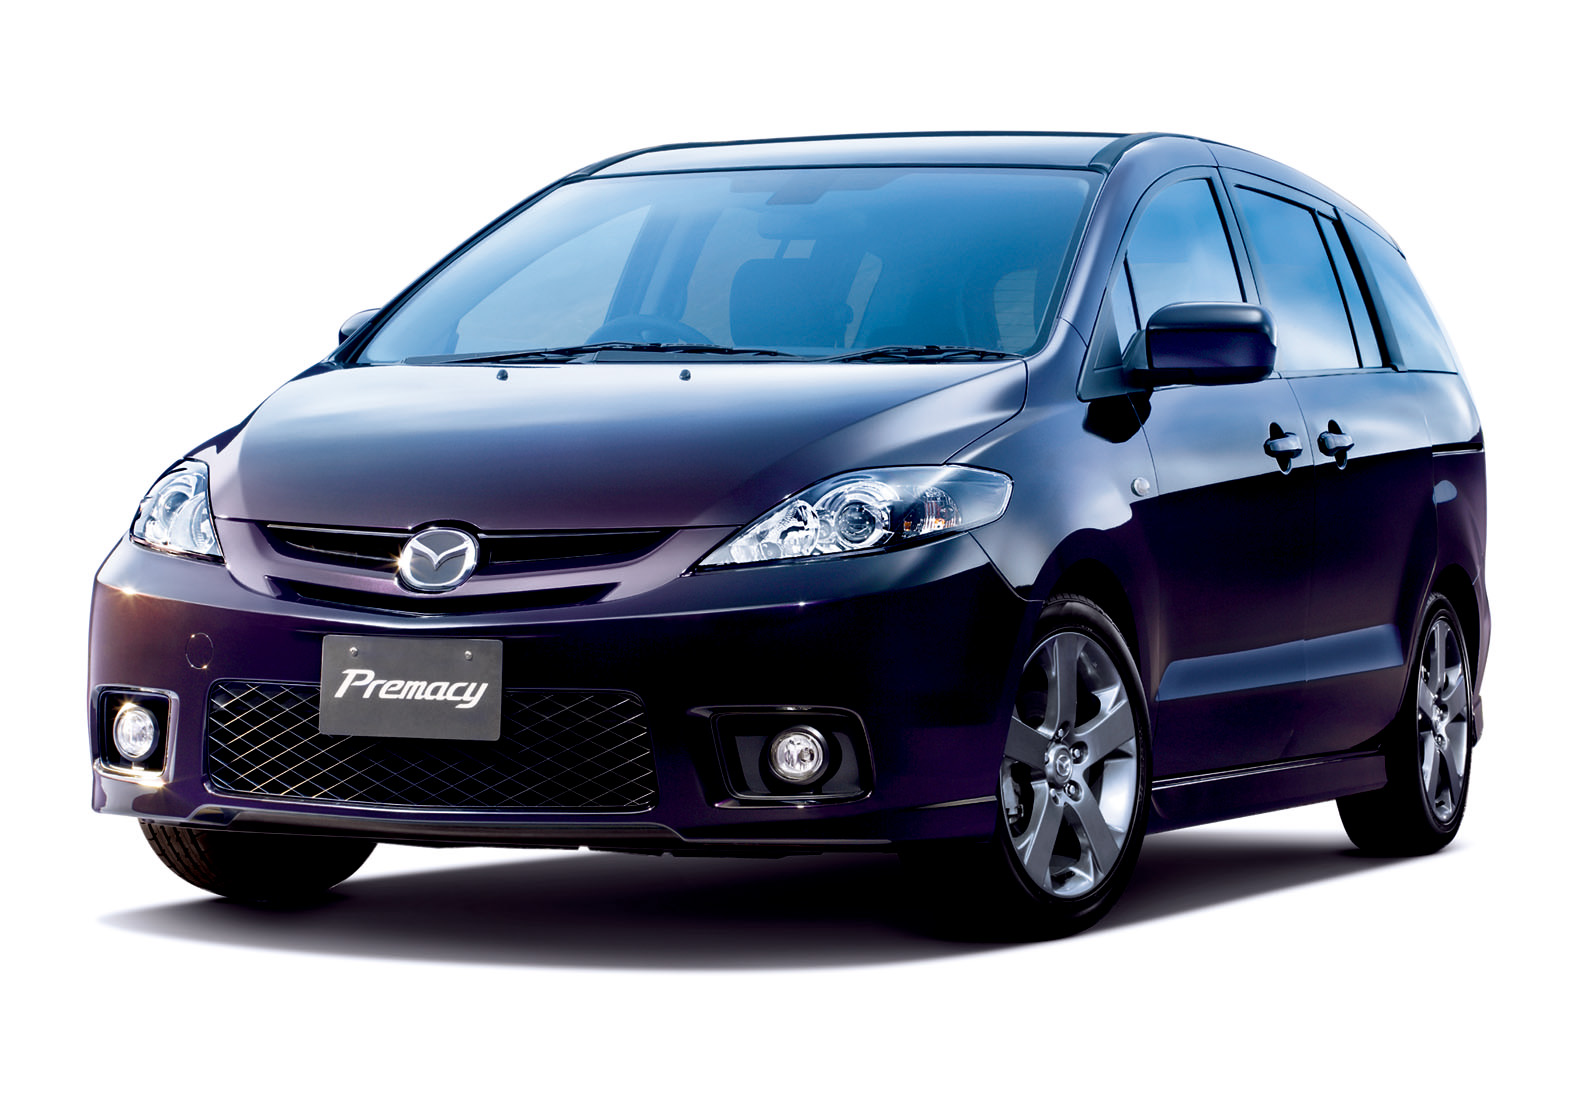 2007 mazda premacy pictures photos wallpapers top speed. Black Bedroom Furniture Sets. Home Design Ideas